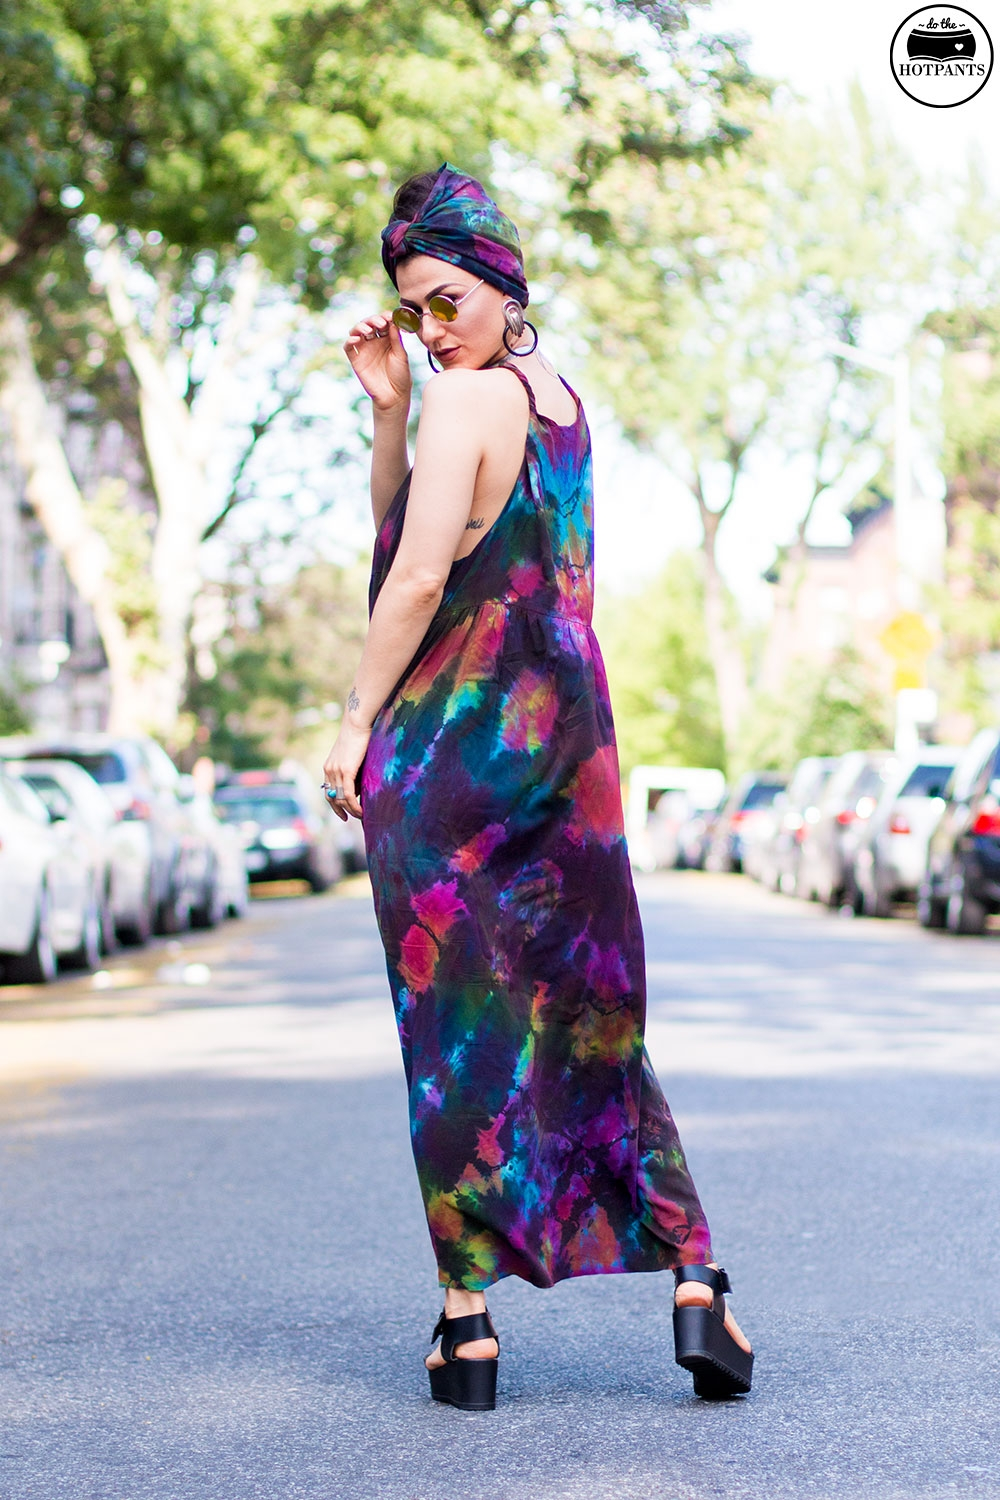 Do The Hotpants Dana Suchow Tie Dye Dress Maxi Flowy Summer Dress Tiedye Headwrap Turban Fashion IMG_9655